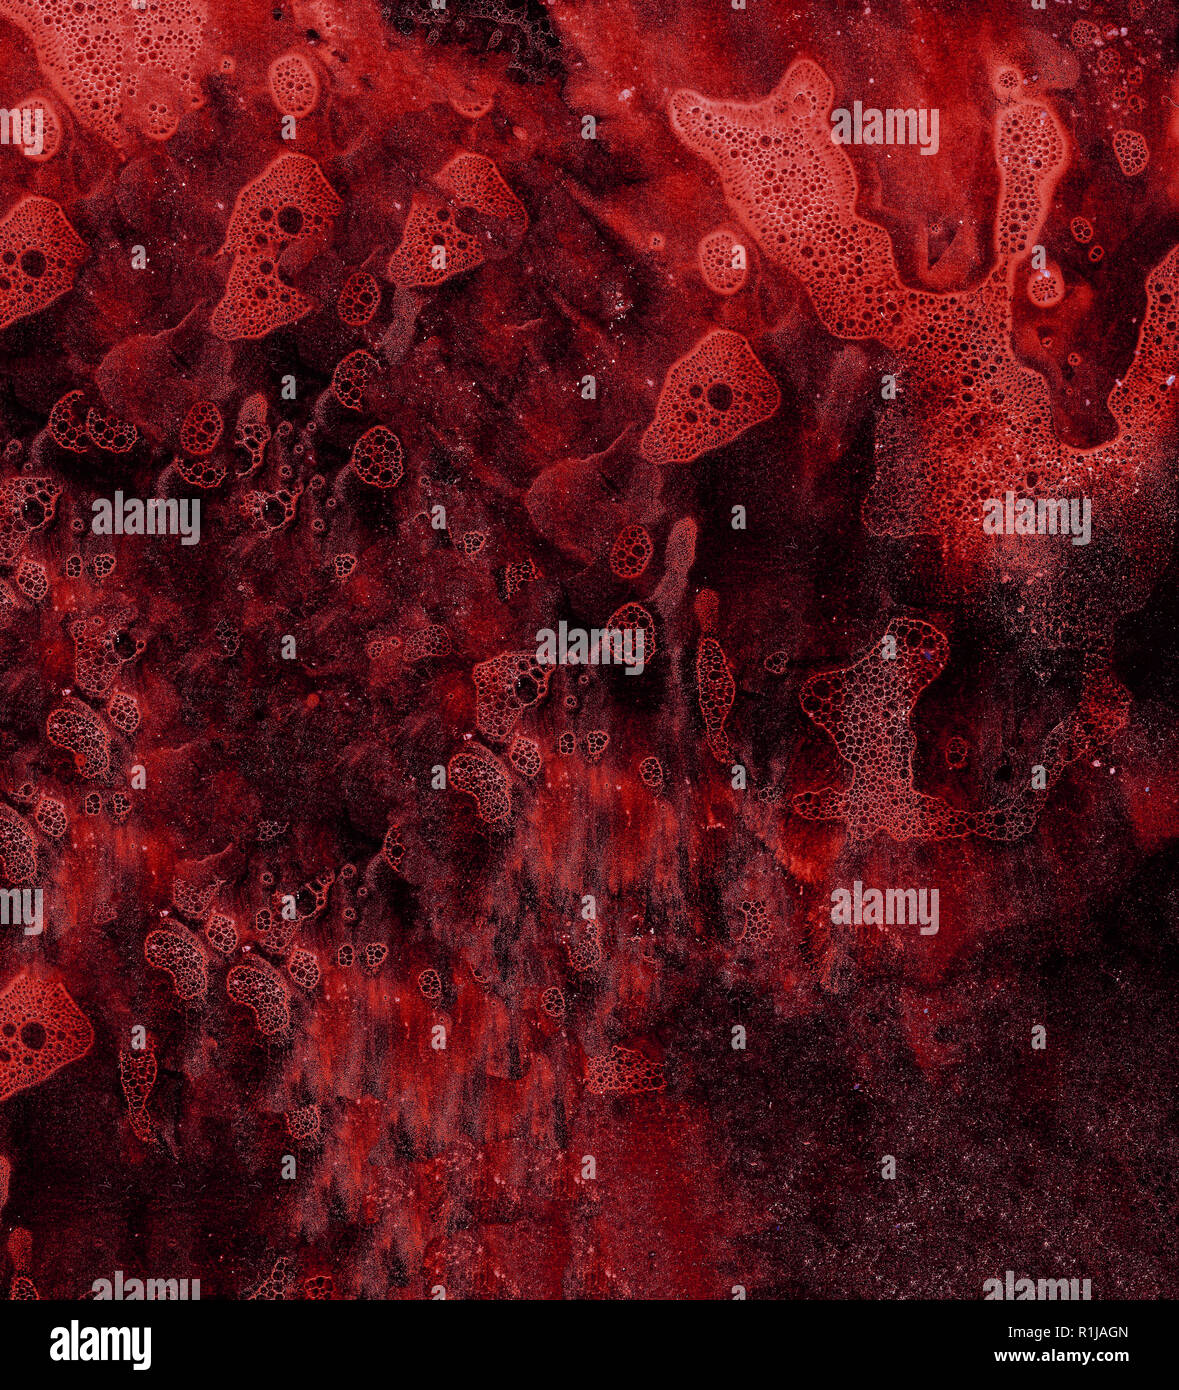 Horrible Grunge Blood Texture Background For Your Design Stock Photo Alamy Browse and download minecraft blood texture packs by the planet minecraft community. https www alamy com horrible grunge blood texture background for your design image224752885 html